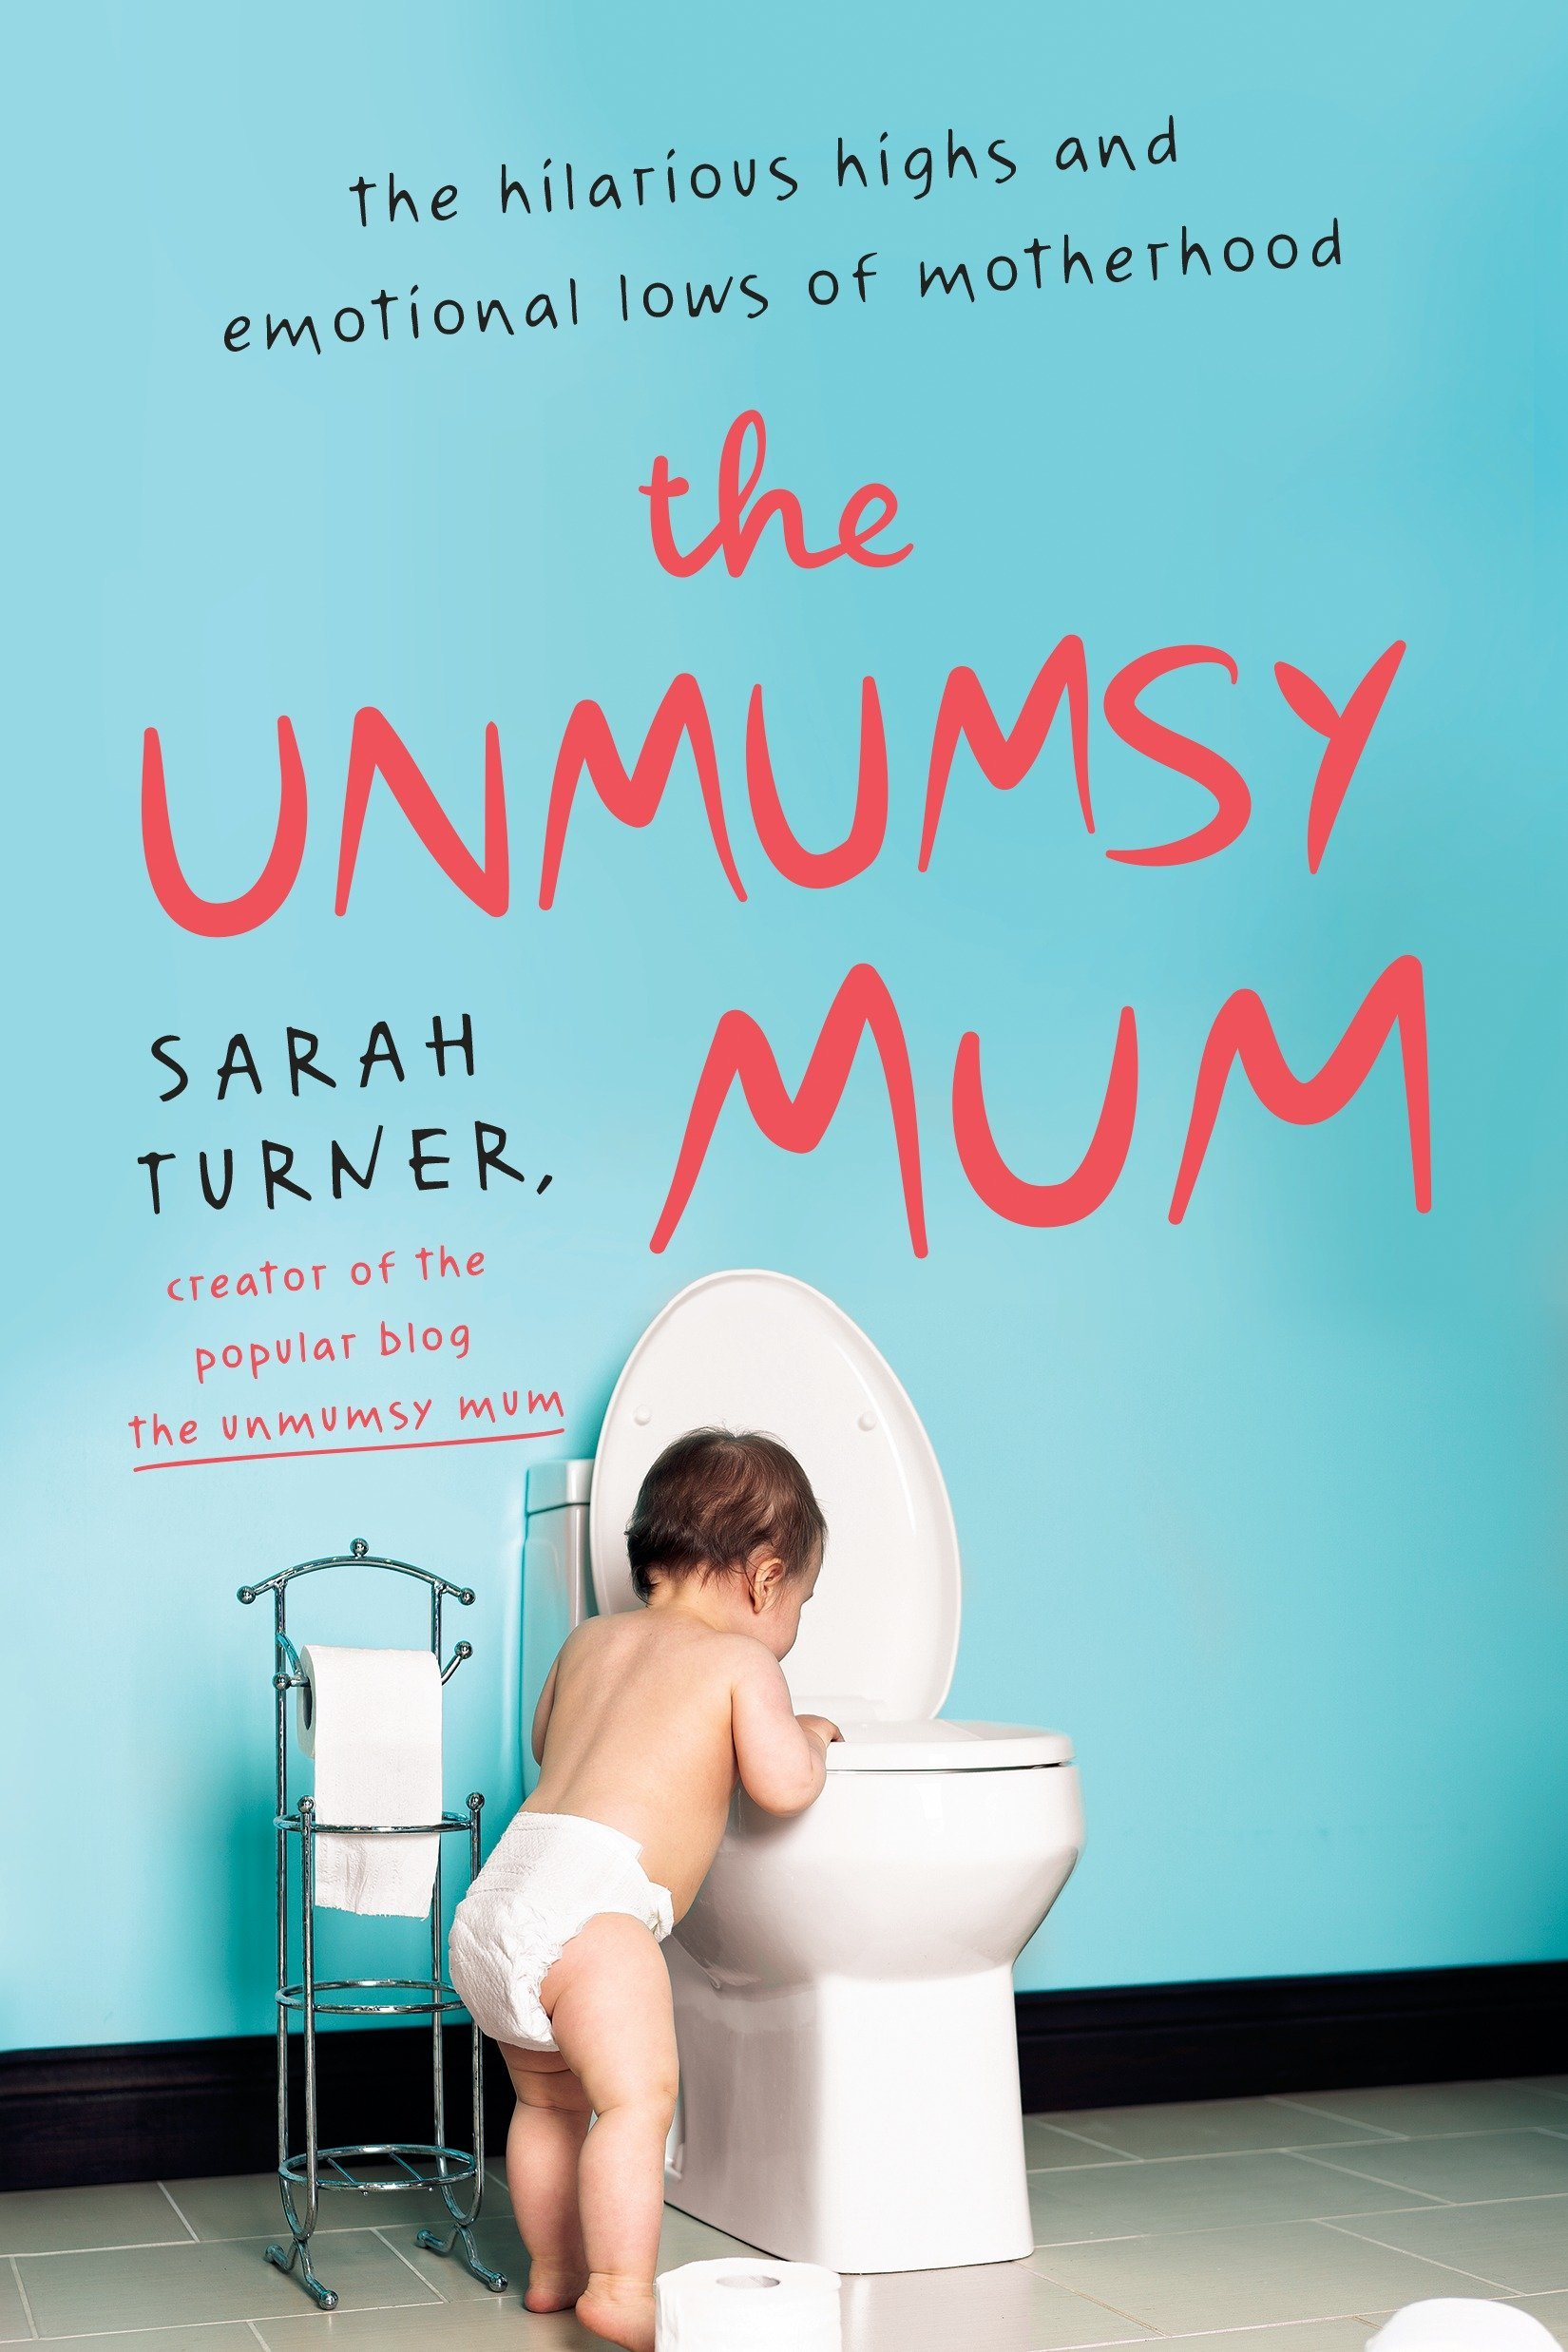 The Unmumsy Mum: The Hilarious Highs and Emotional Lows of Motherhood - (PB)